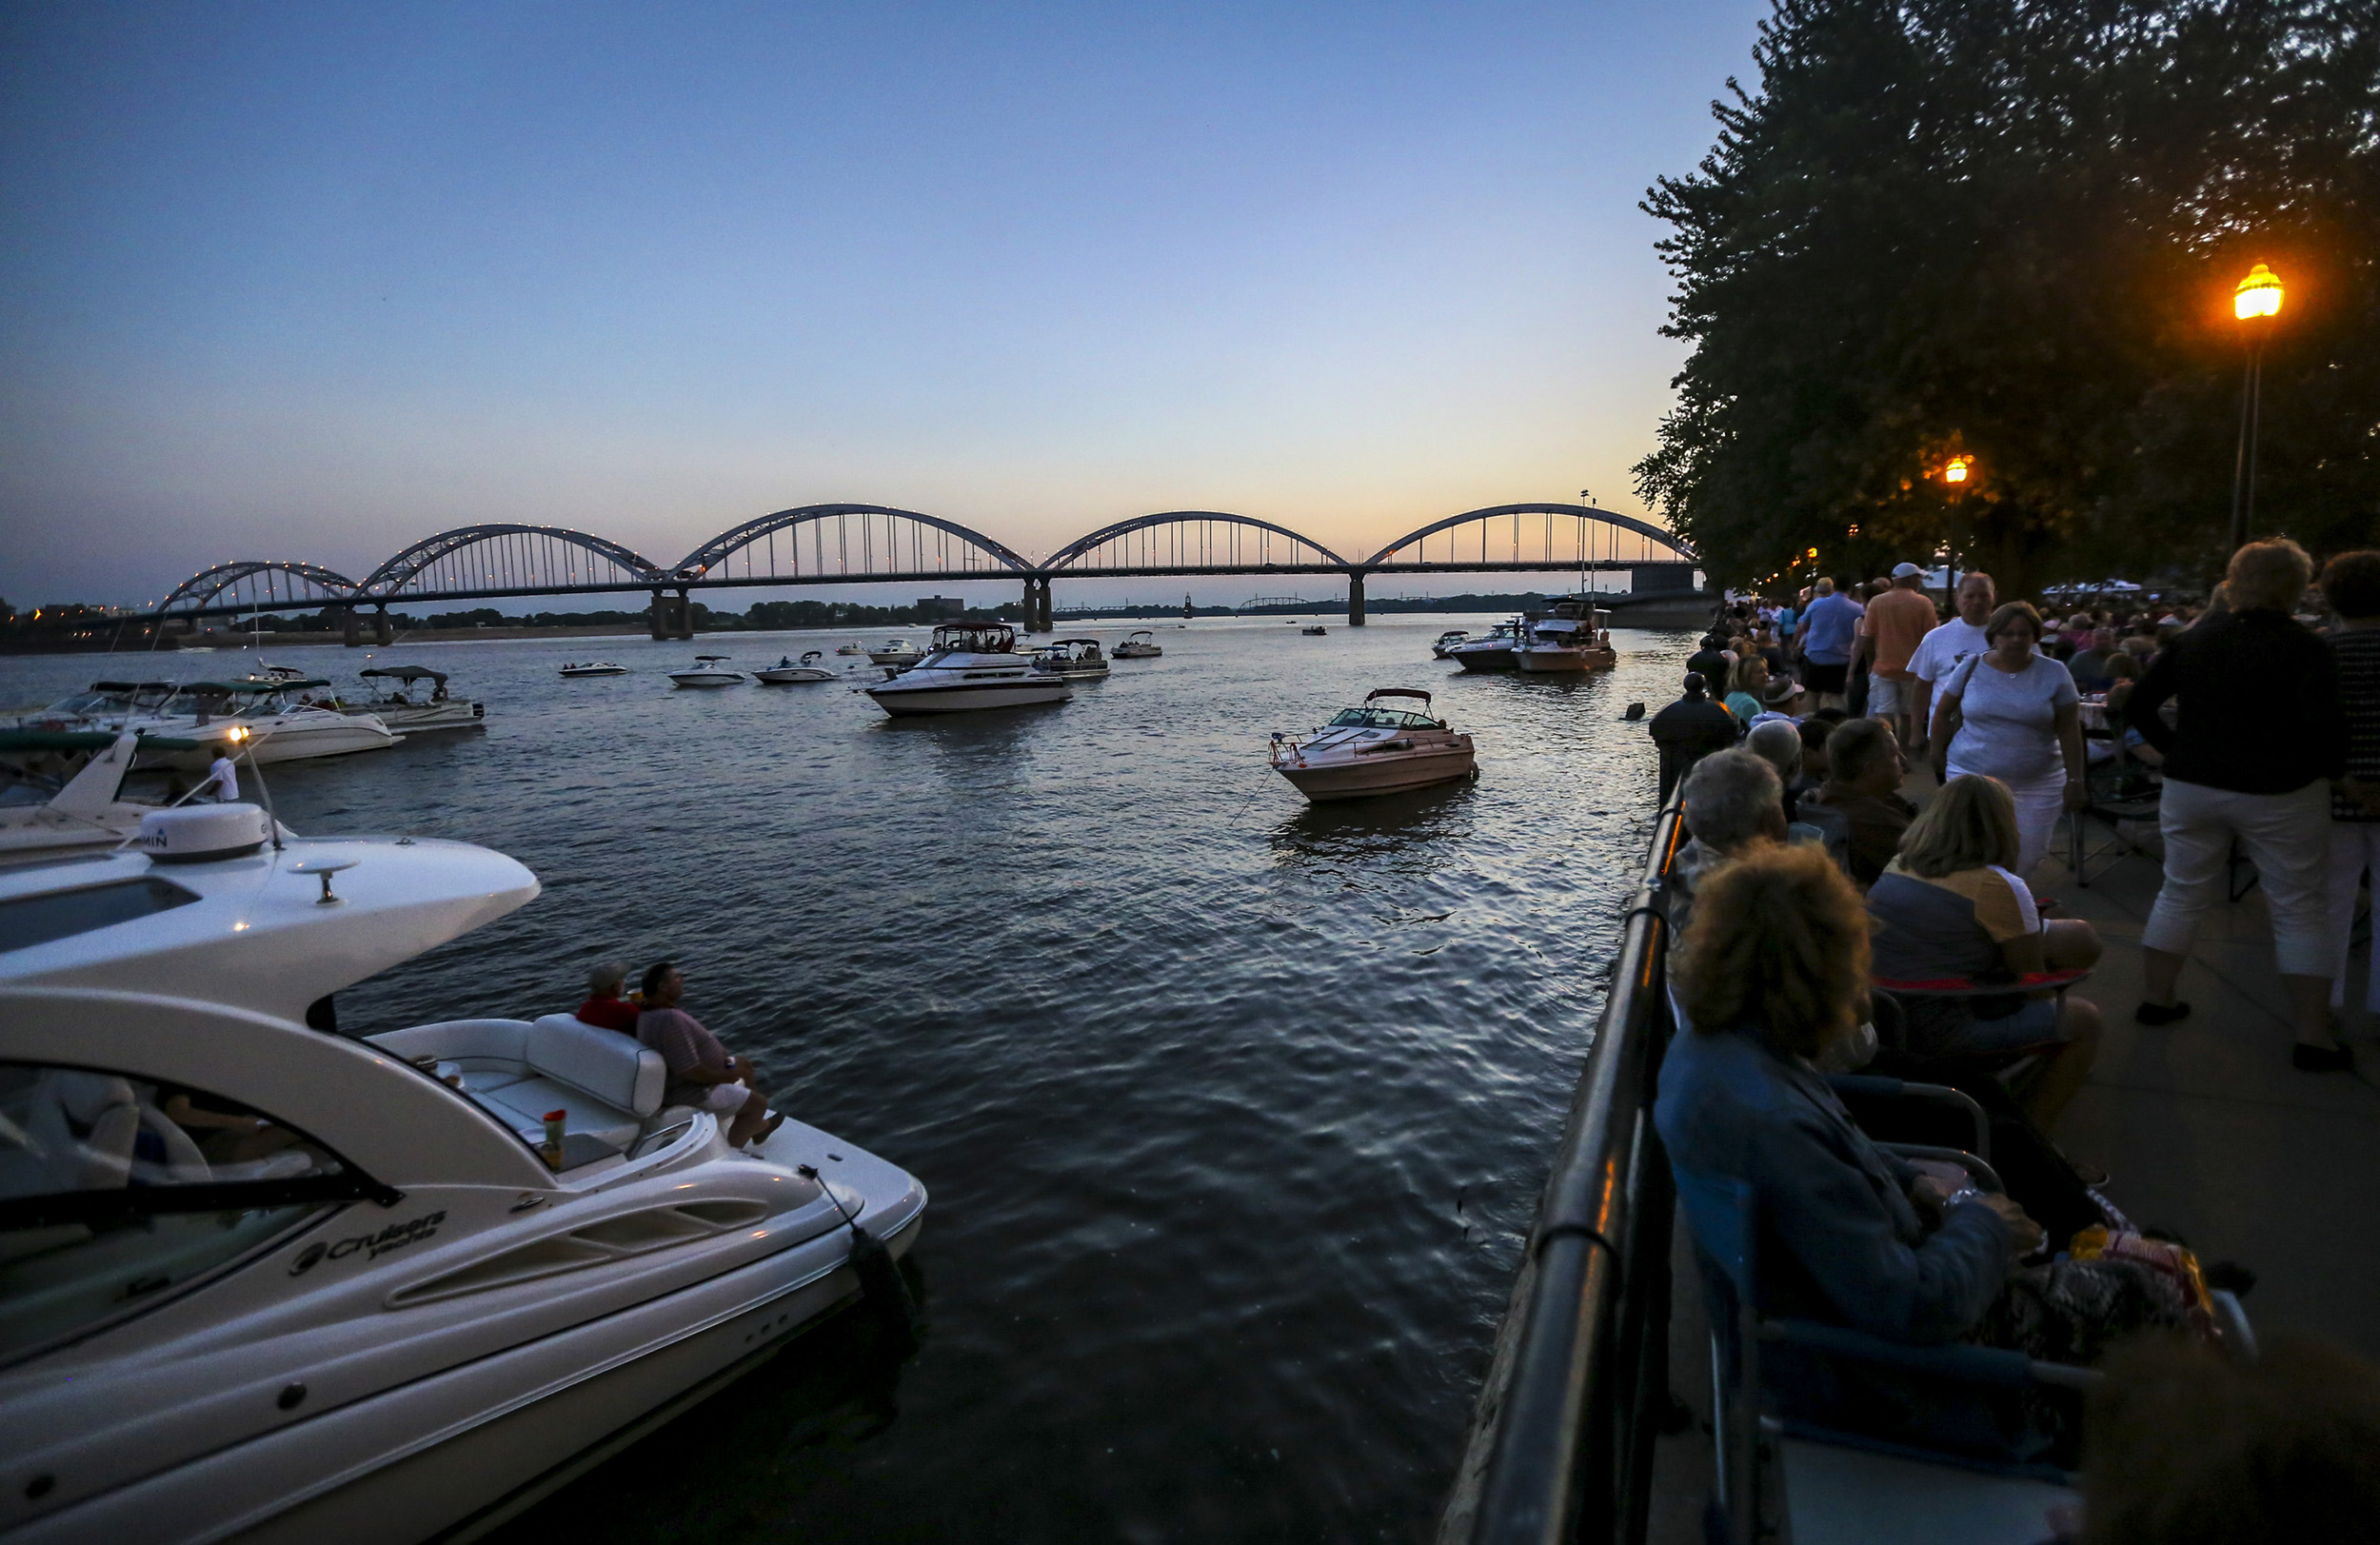 Attendees walk up the riverfront path as boaters listen to the performance from the Mississippi River at LeClaire Park in Davenport, Saturday, August 19, 2017. The Quad-City Bank & Trust Riverfront Pops: The Beatles' Greatest Hits show was performed by the Quad-City Symphony Orchestra and was enjoyed by thousands in the park as well as on the river.